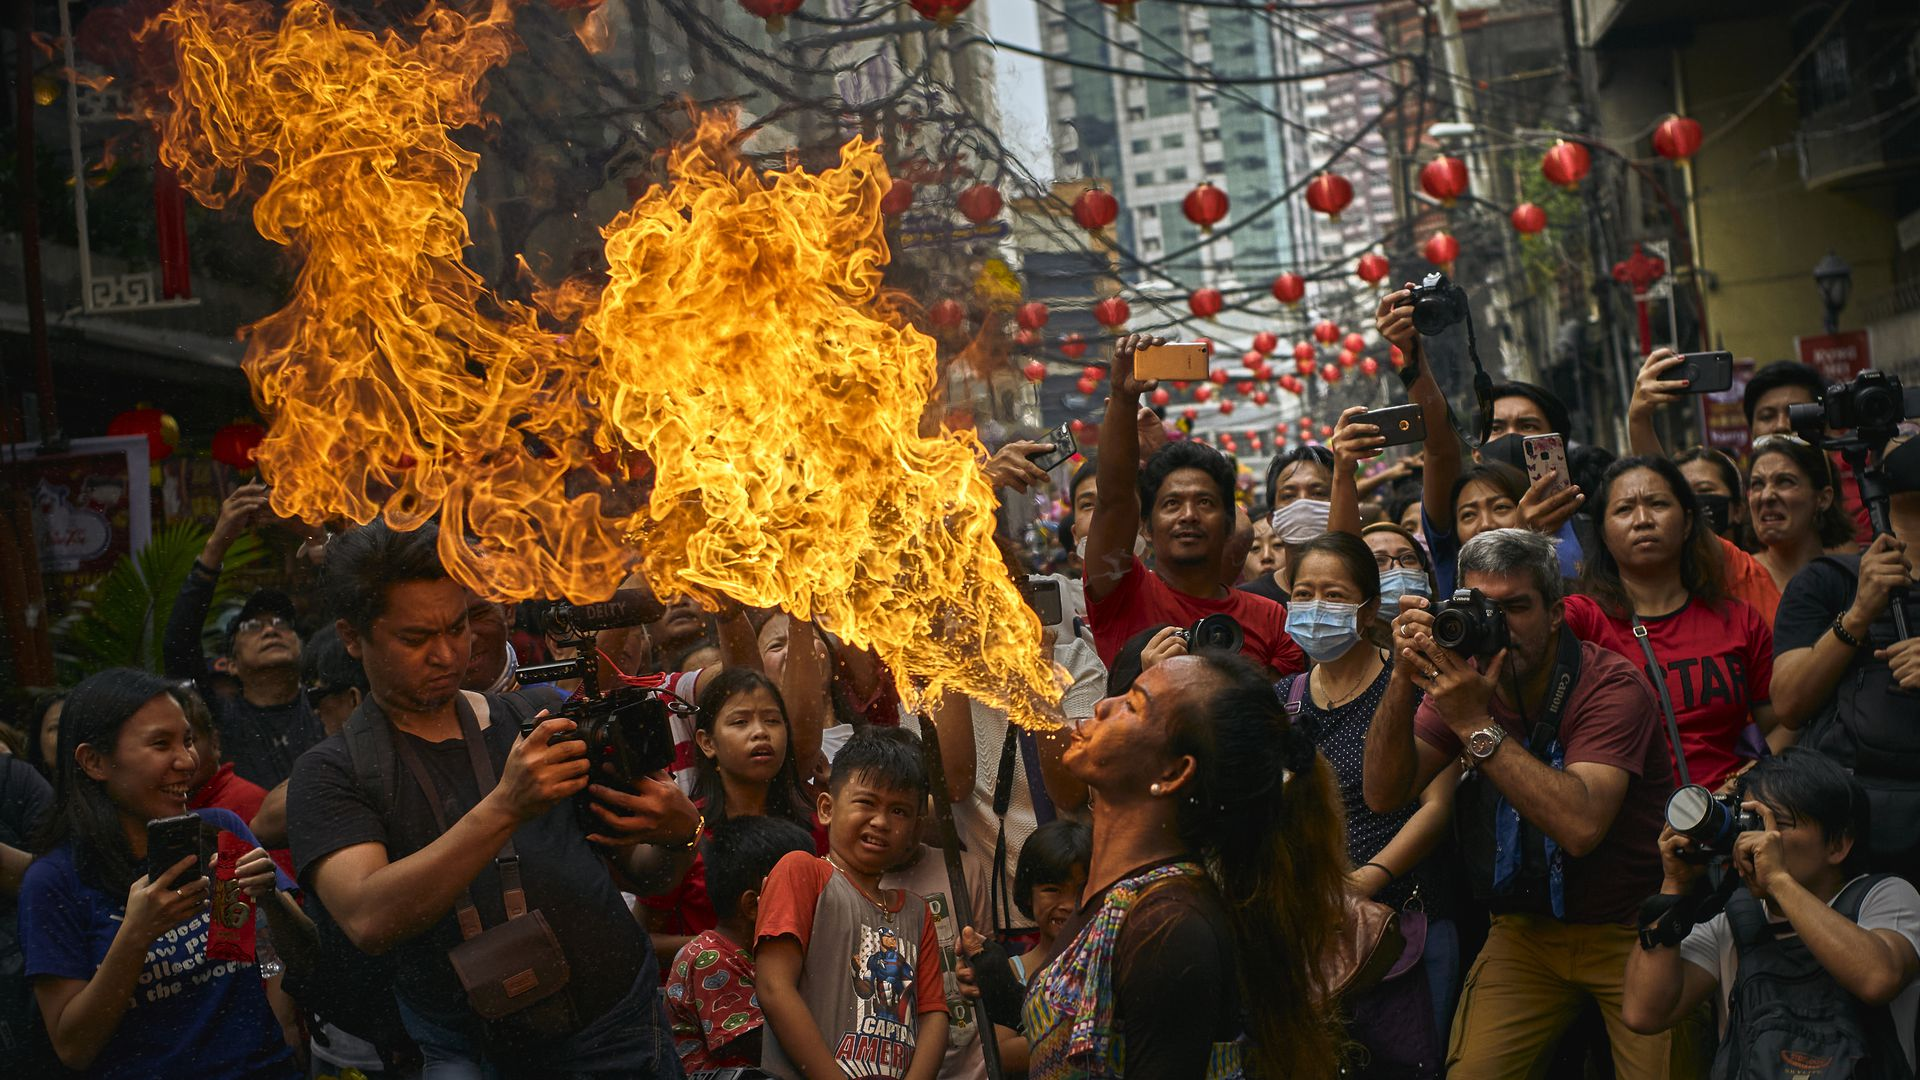 In this image, a man breathes fire as a dragon dancer celebrating the Lunar New Year